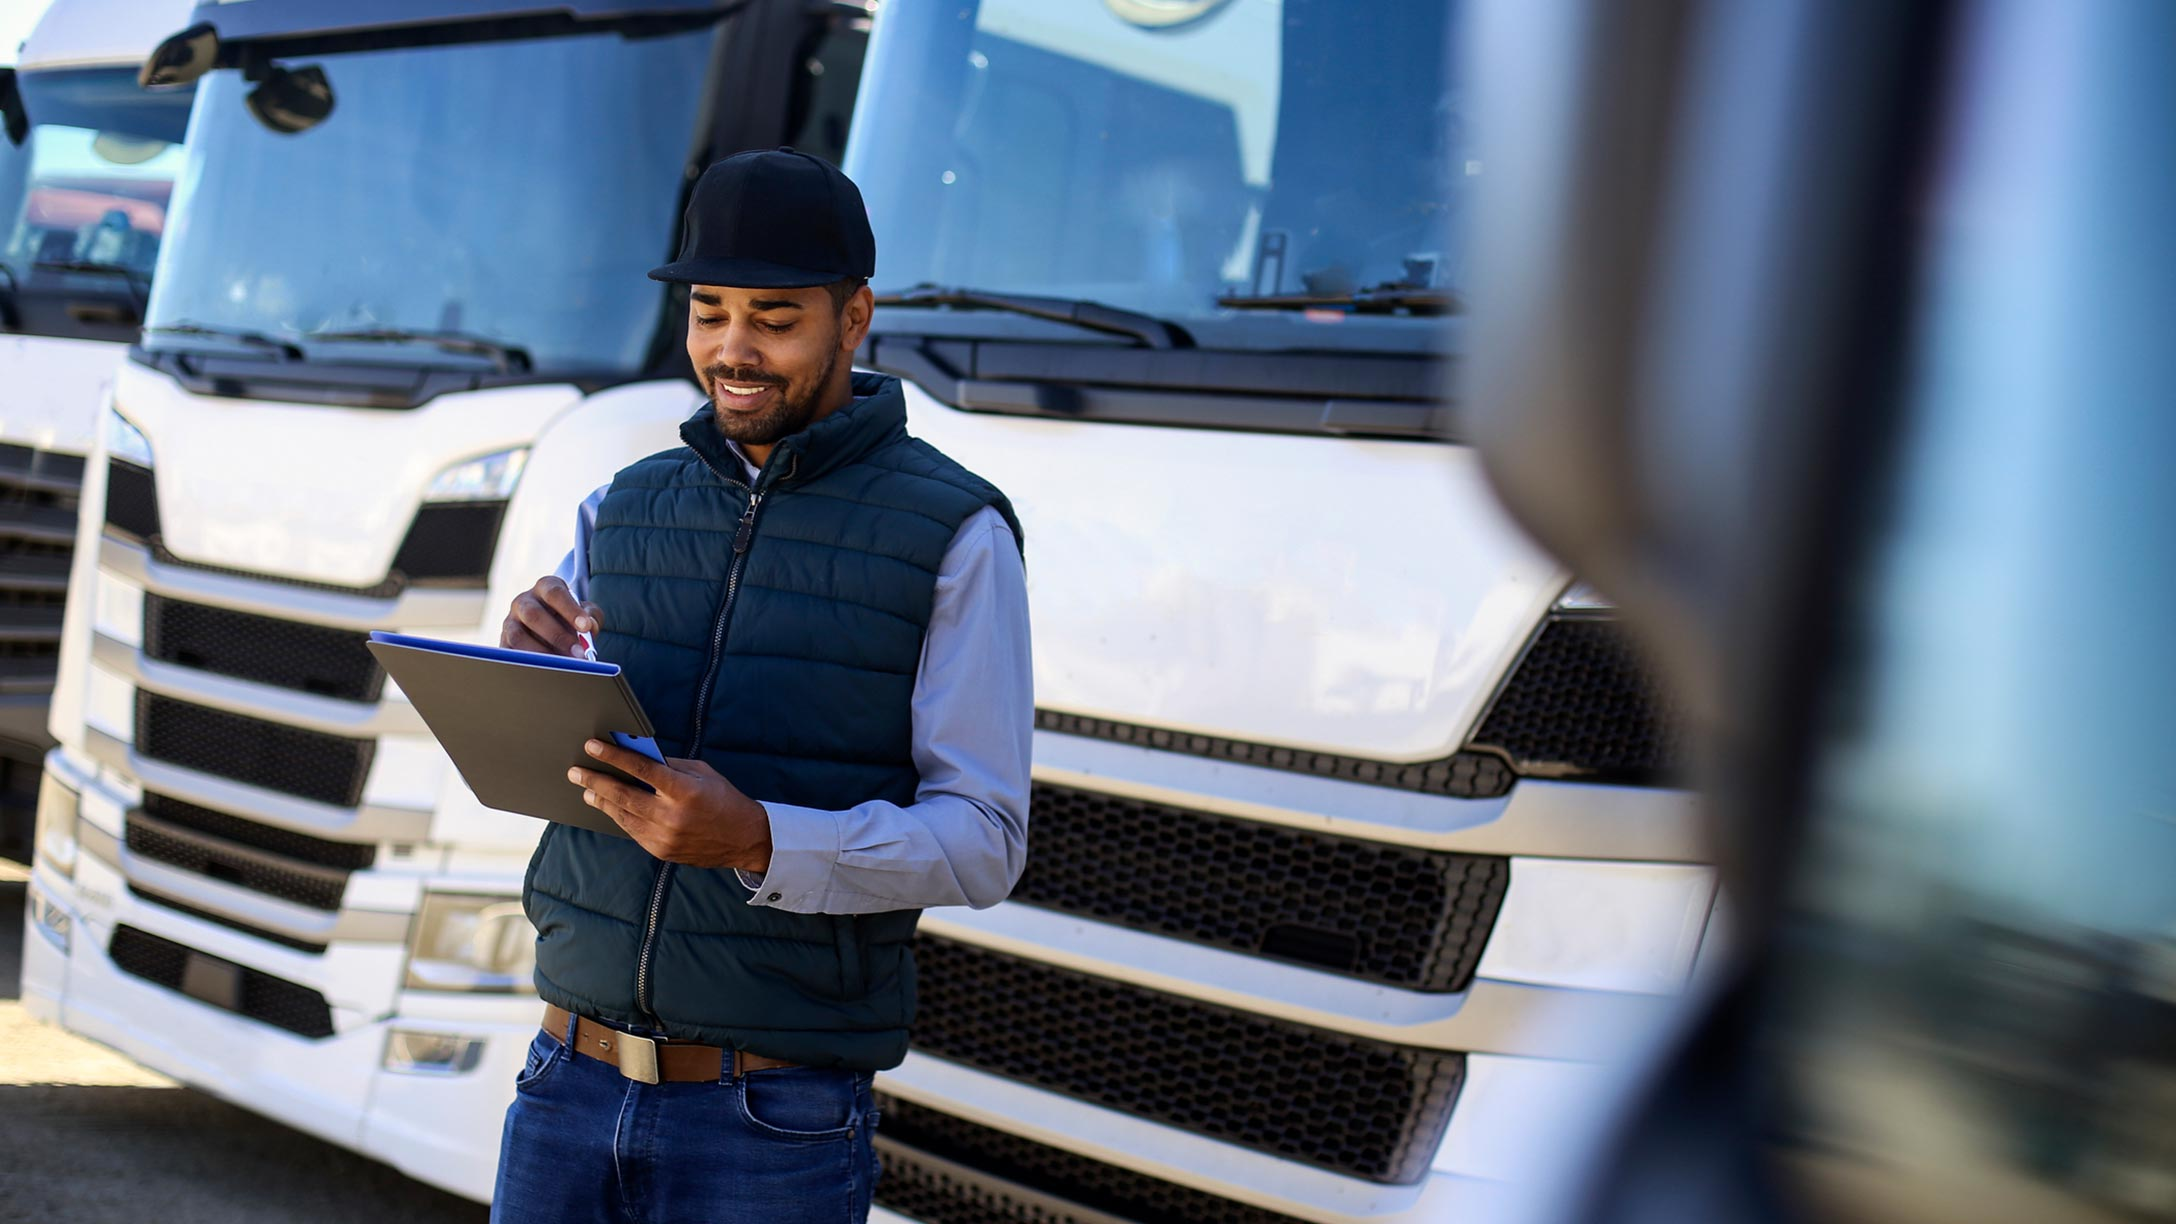 Person standing in front of truck using tablet.